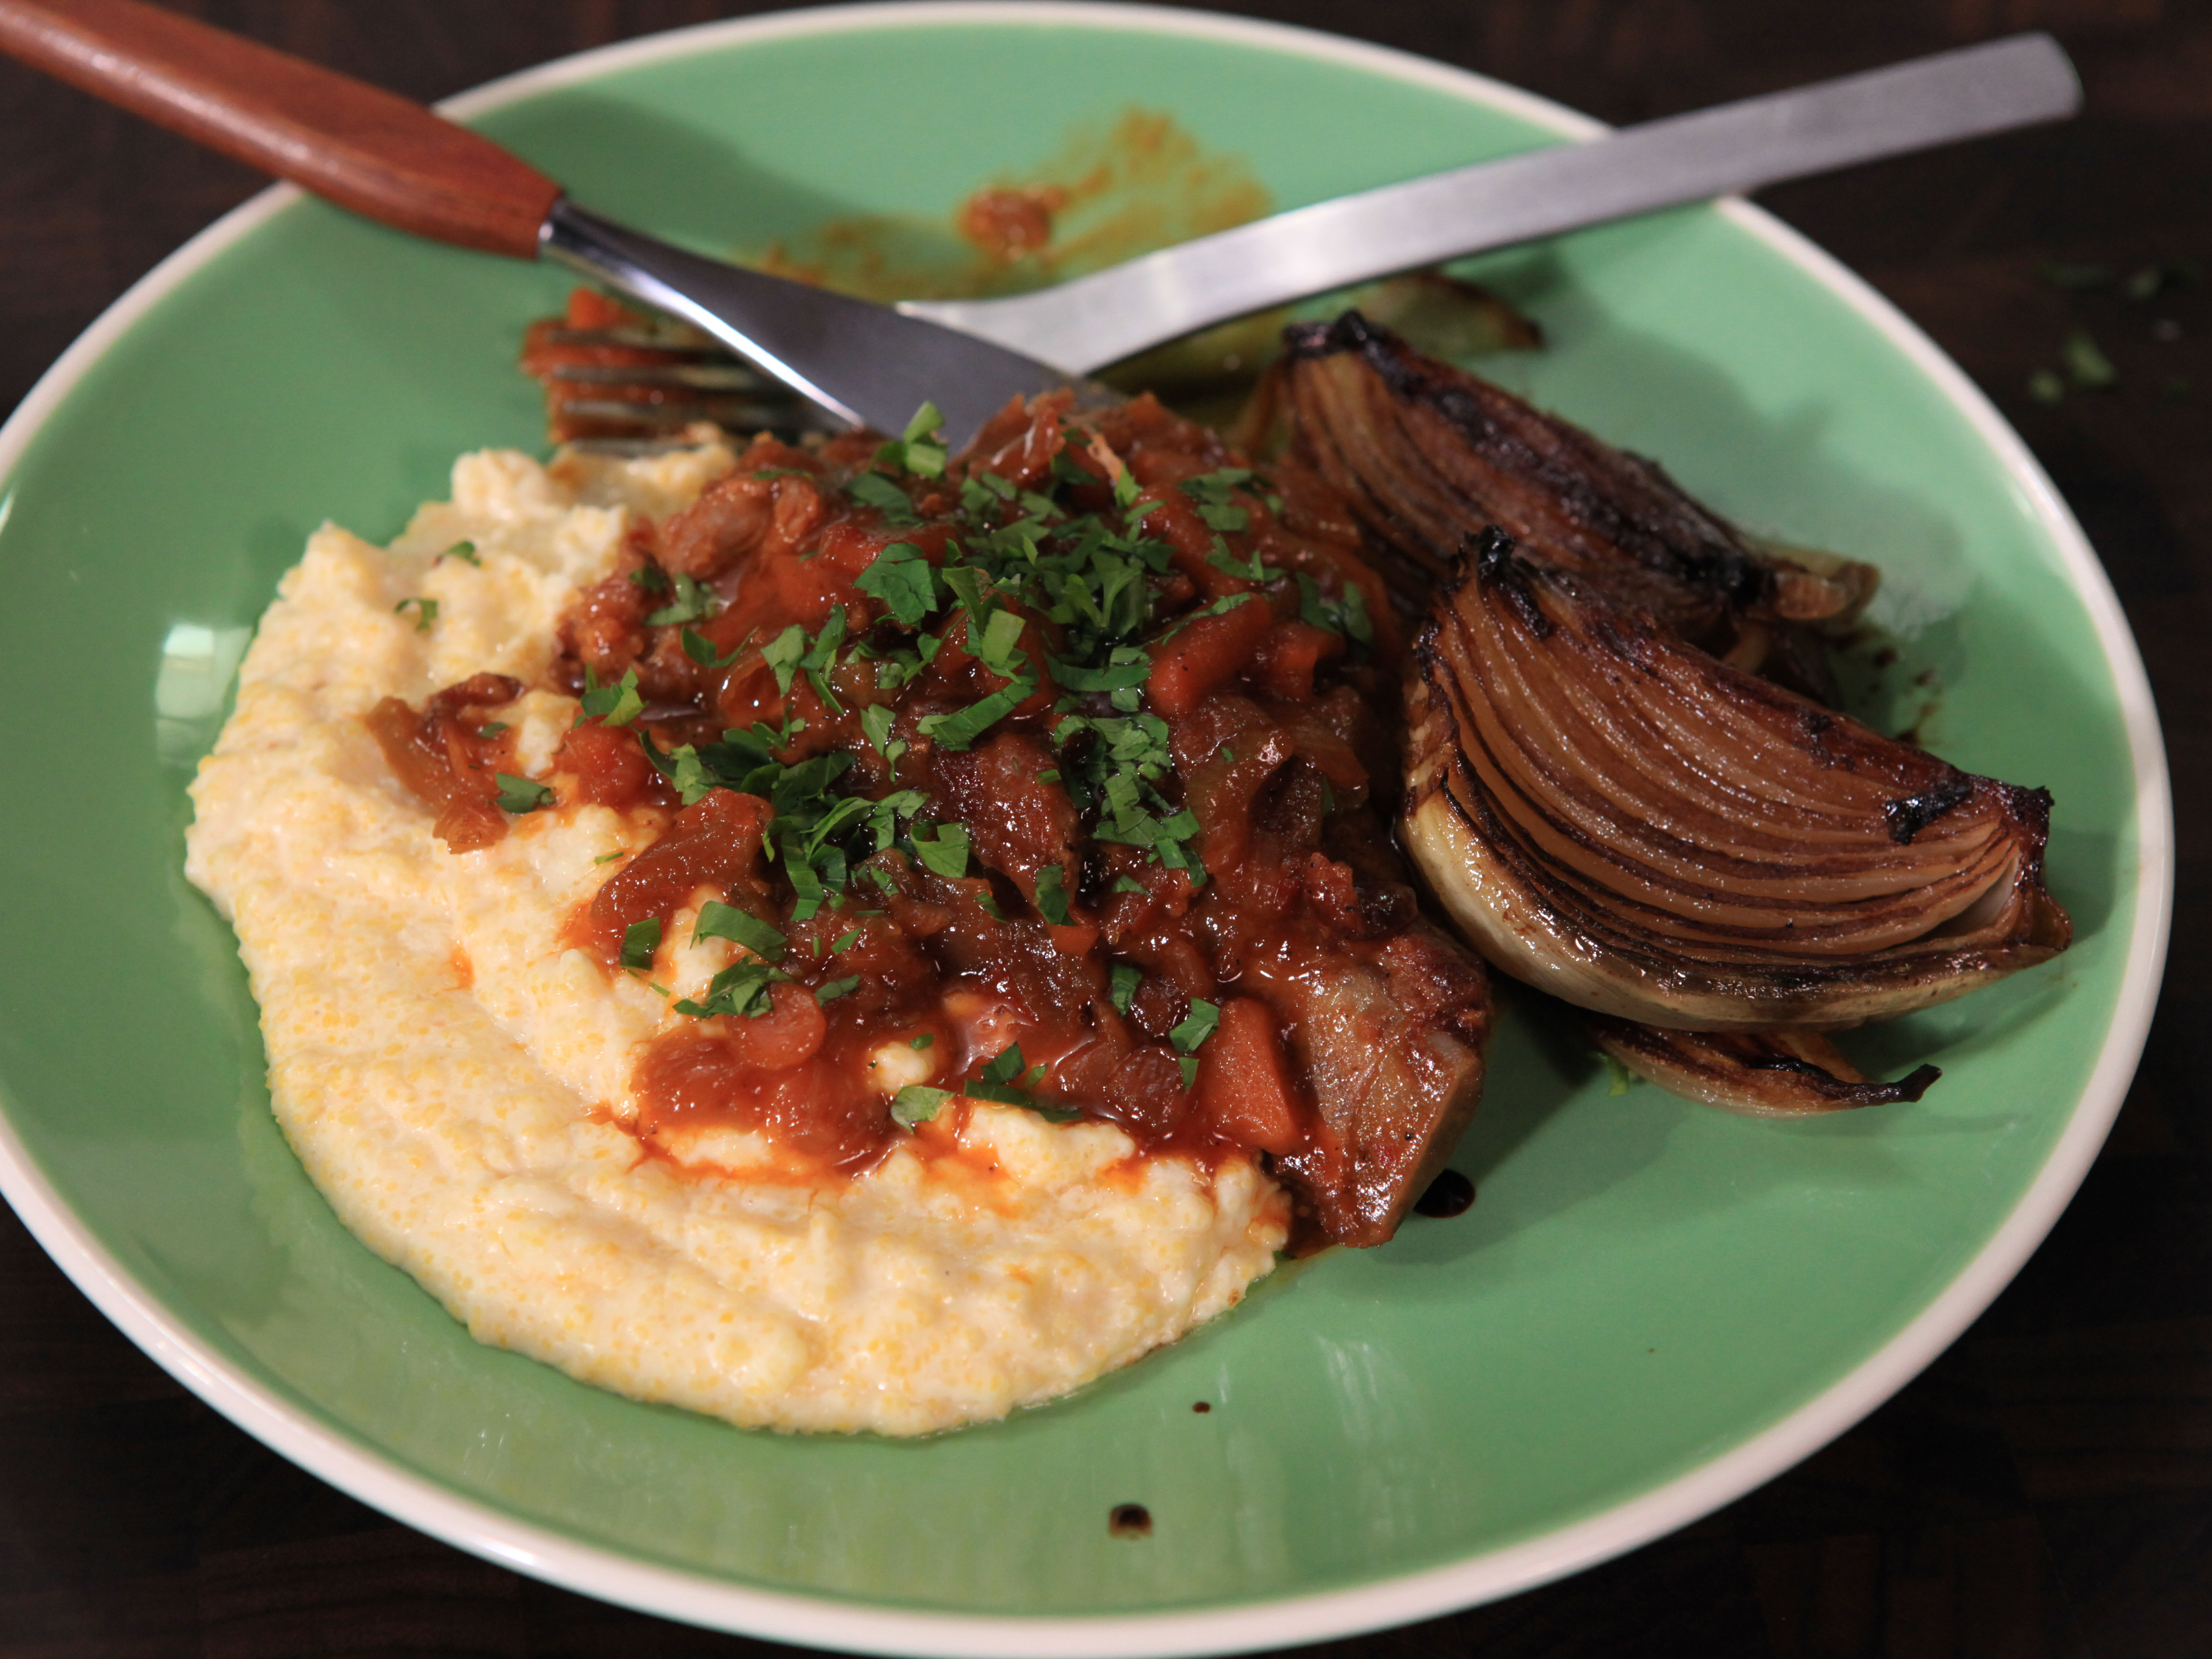 Braised Country Style Pork Ribs  Braised Country Style Pork Ribs Recipe on Snooth Eats